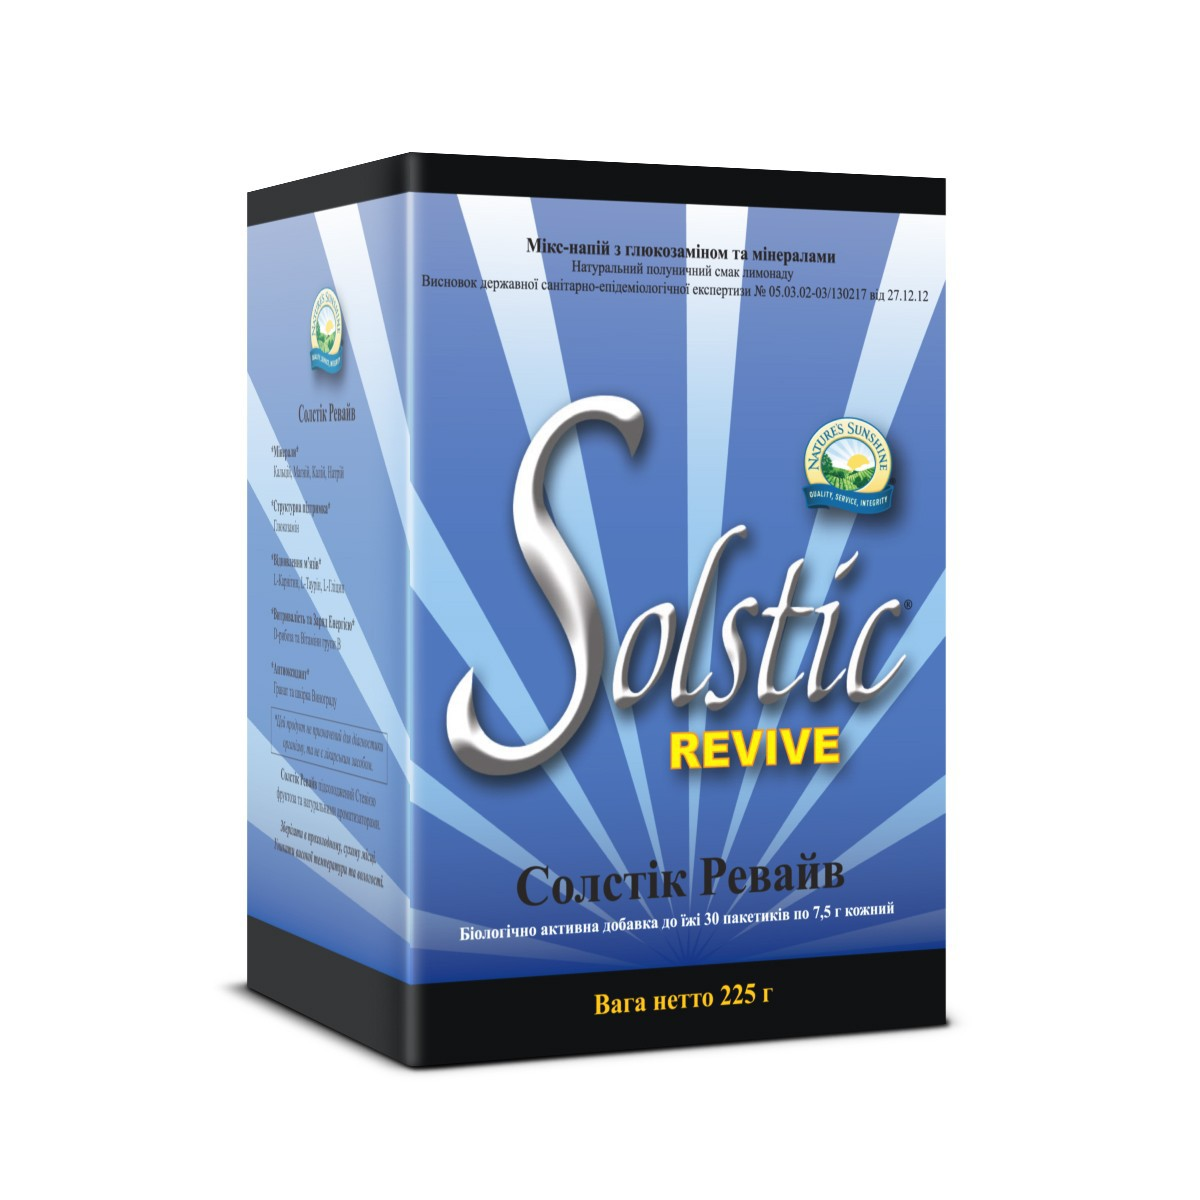 Solstic Revive